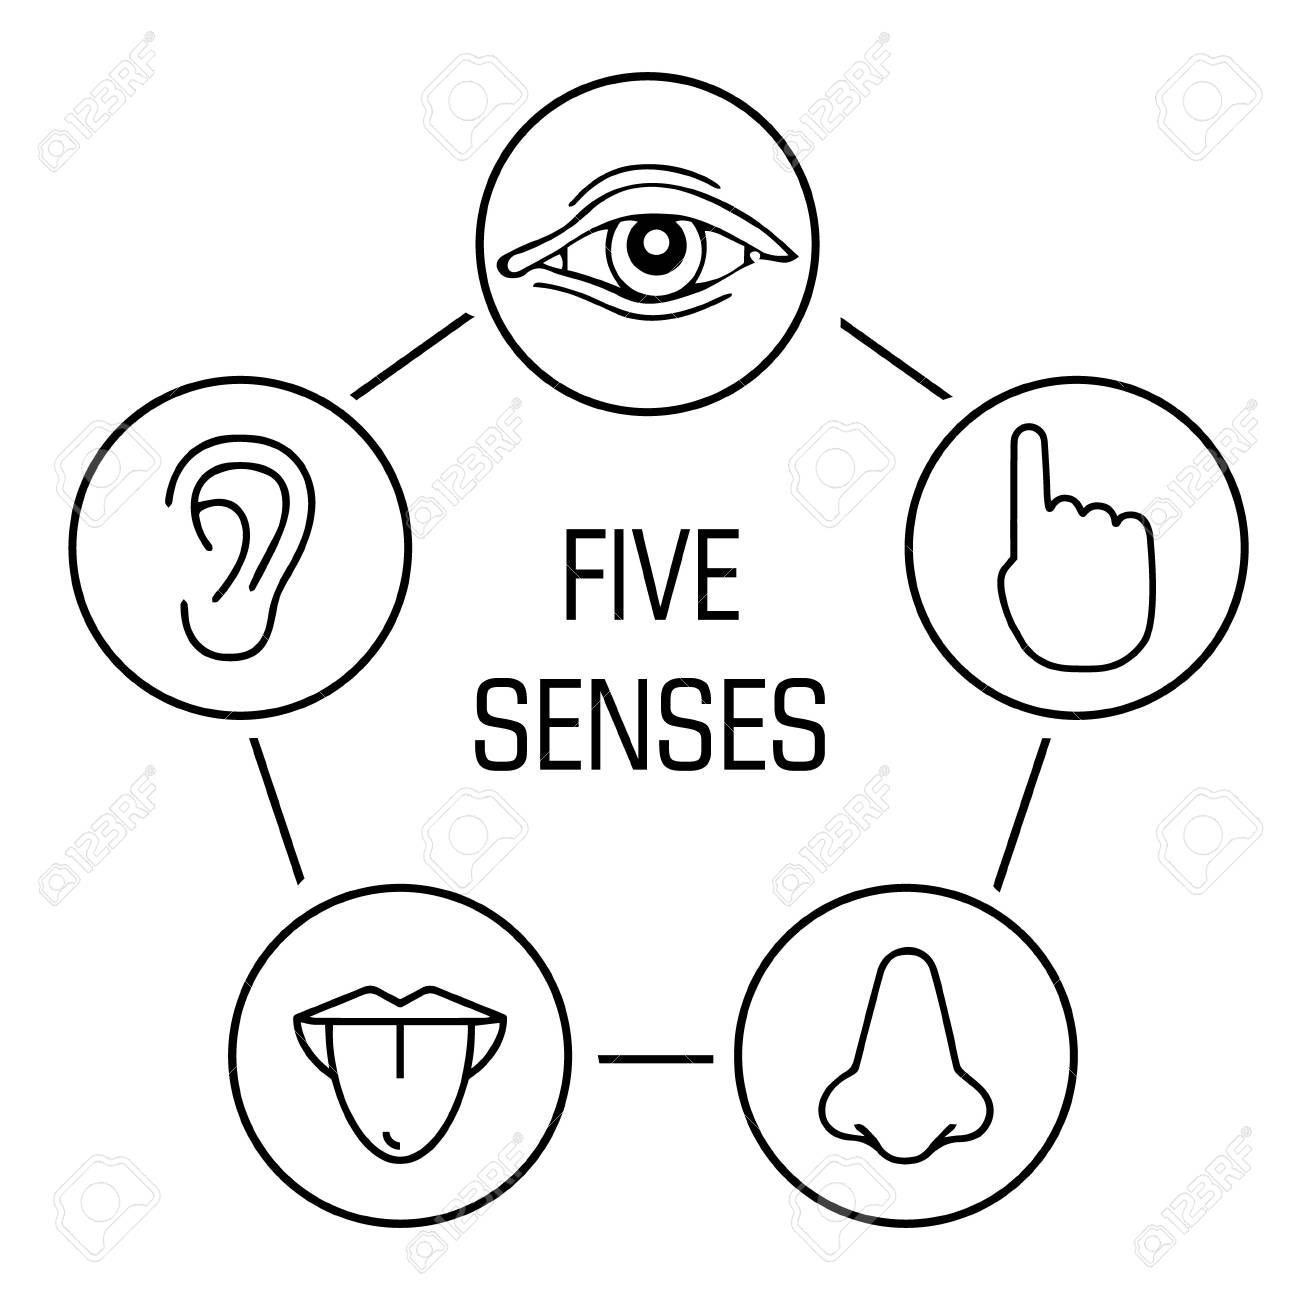 set of five human senses. Vision, hearing, touch, taste, smell icon - 97228253